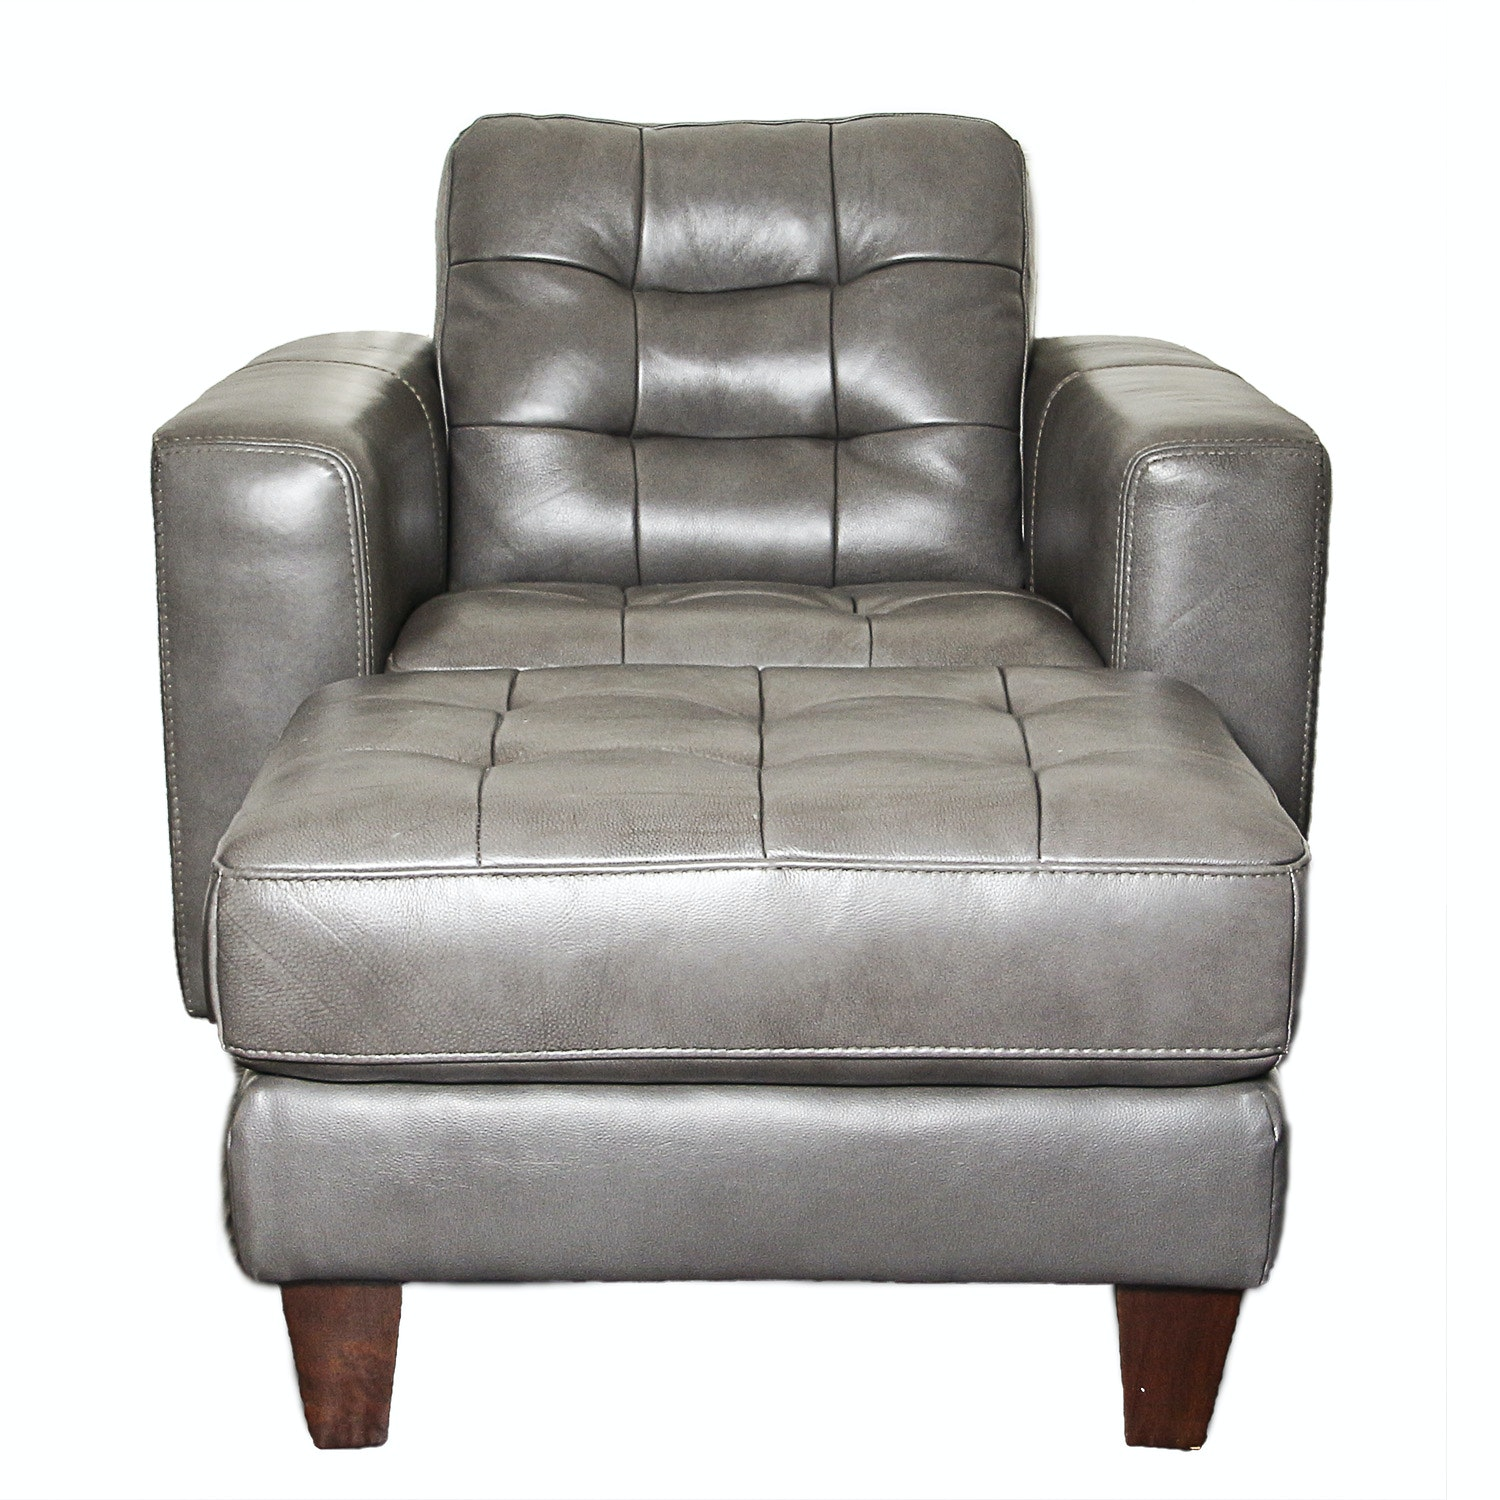 Leather Arm Chair and Ottoman